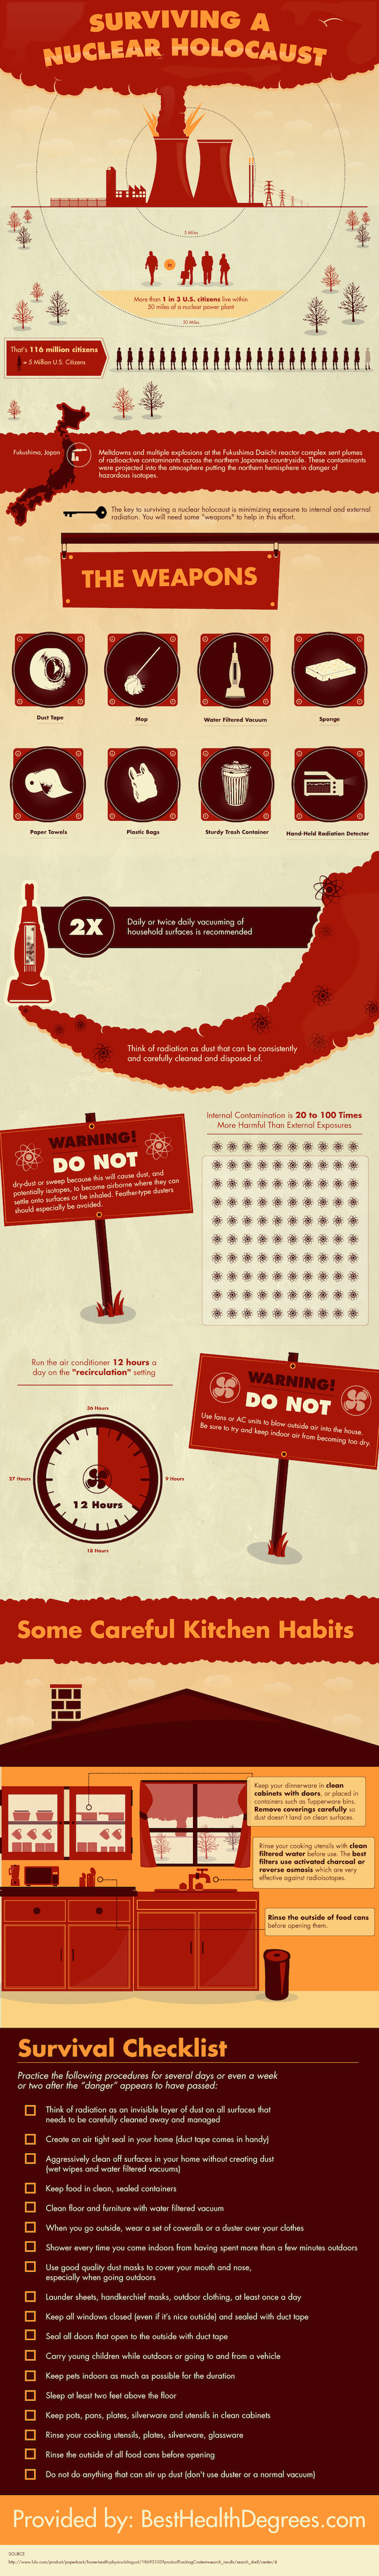 nuclear-holocaust-infographic